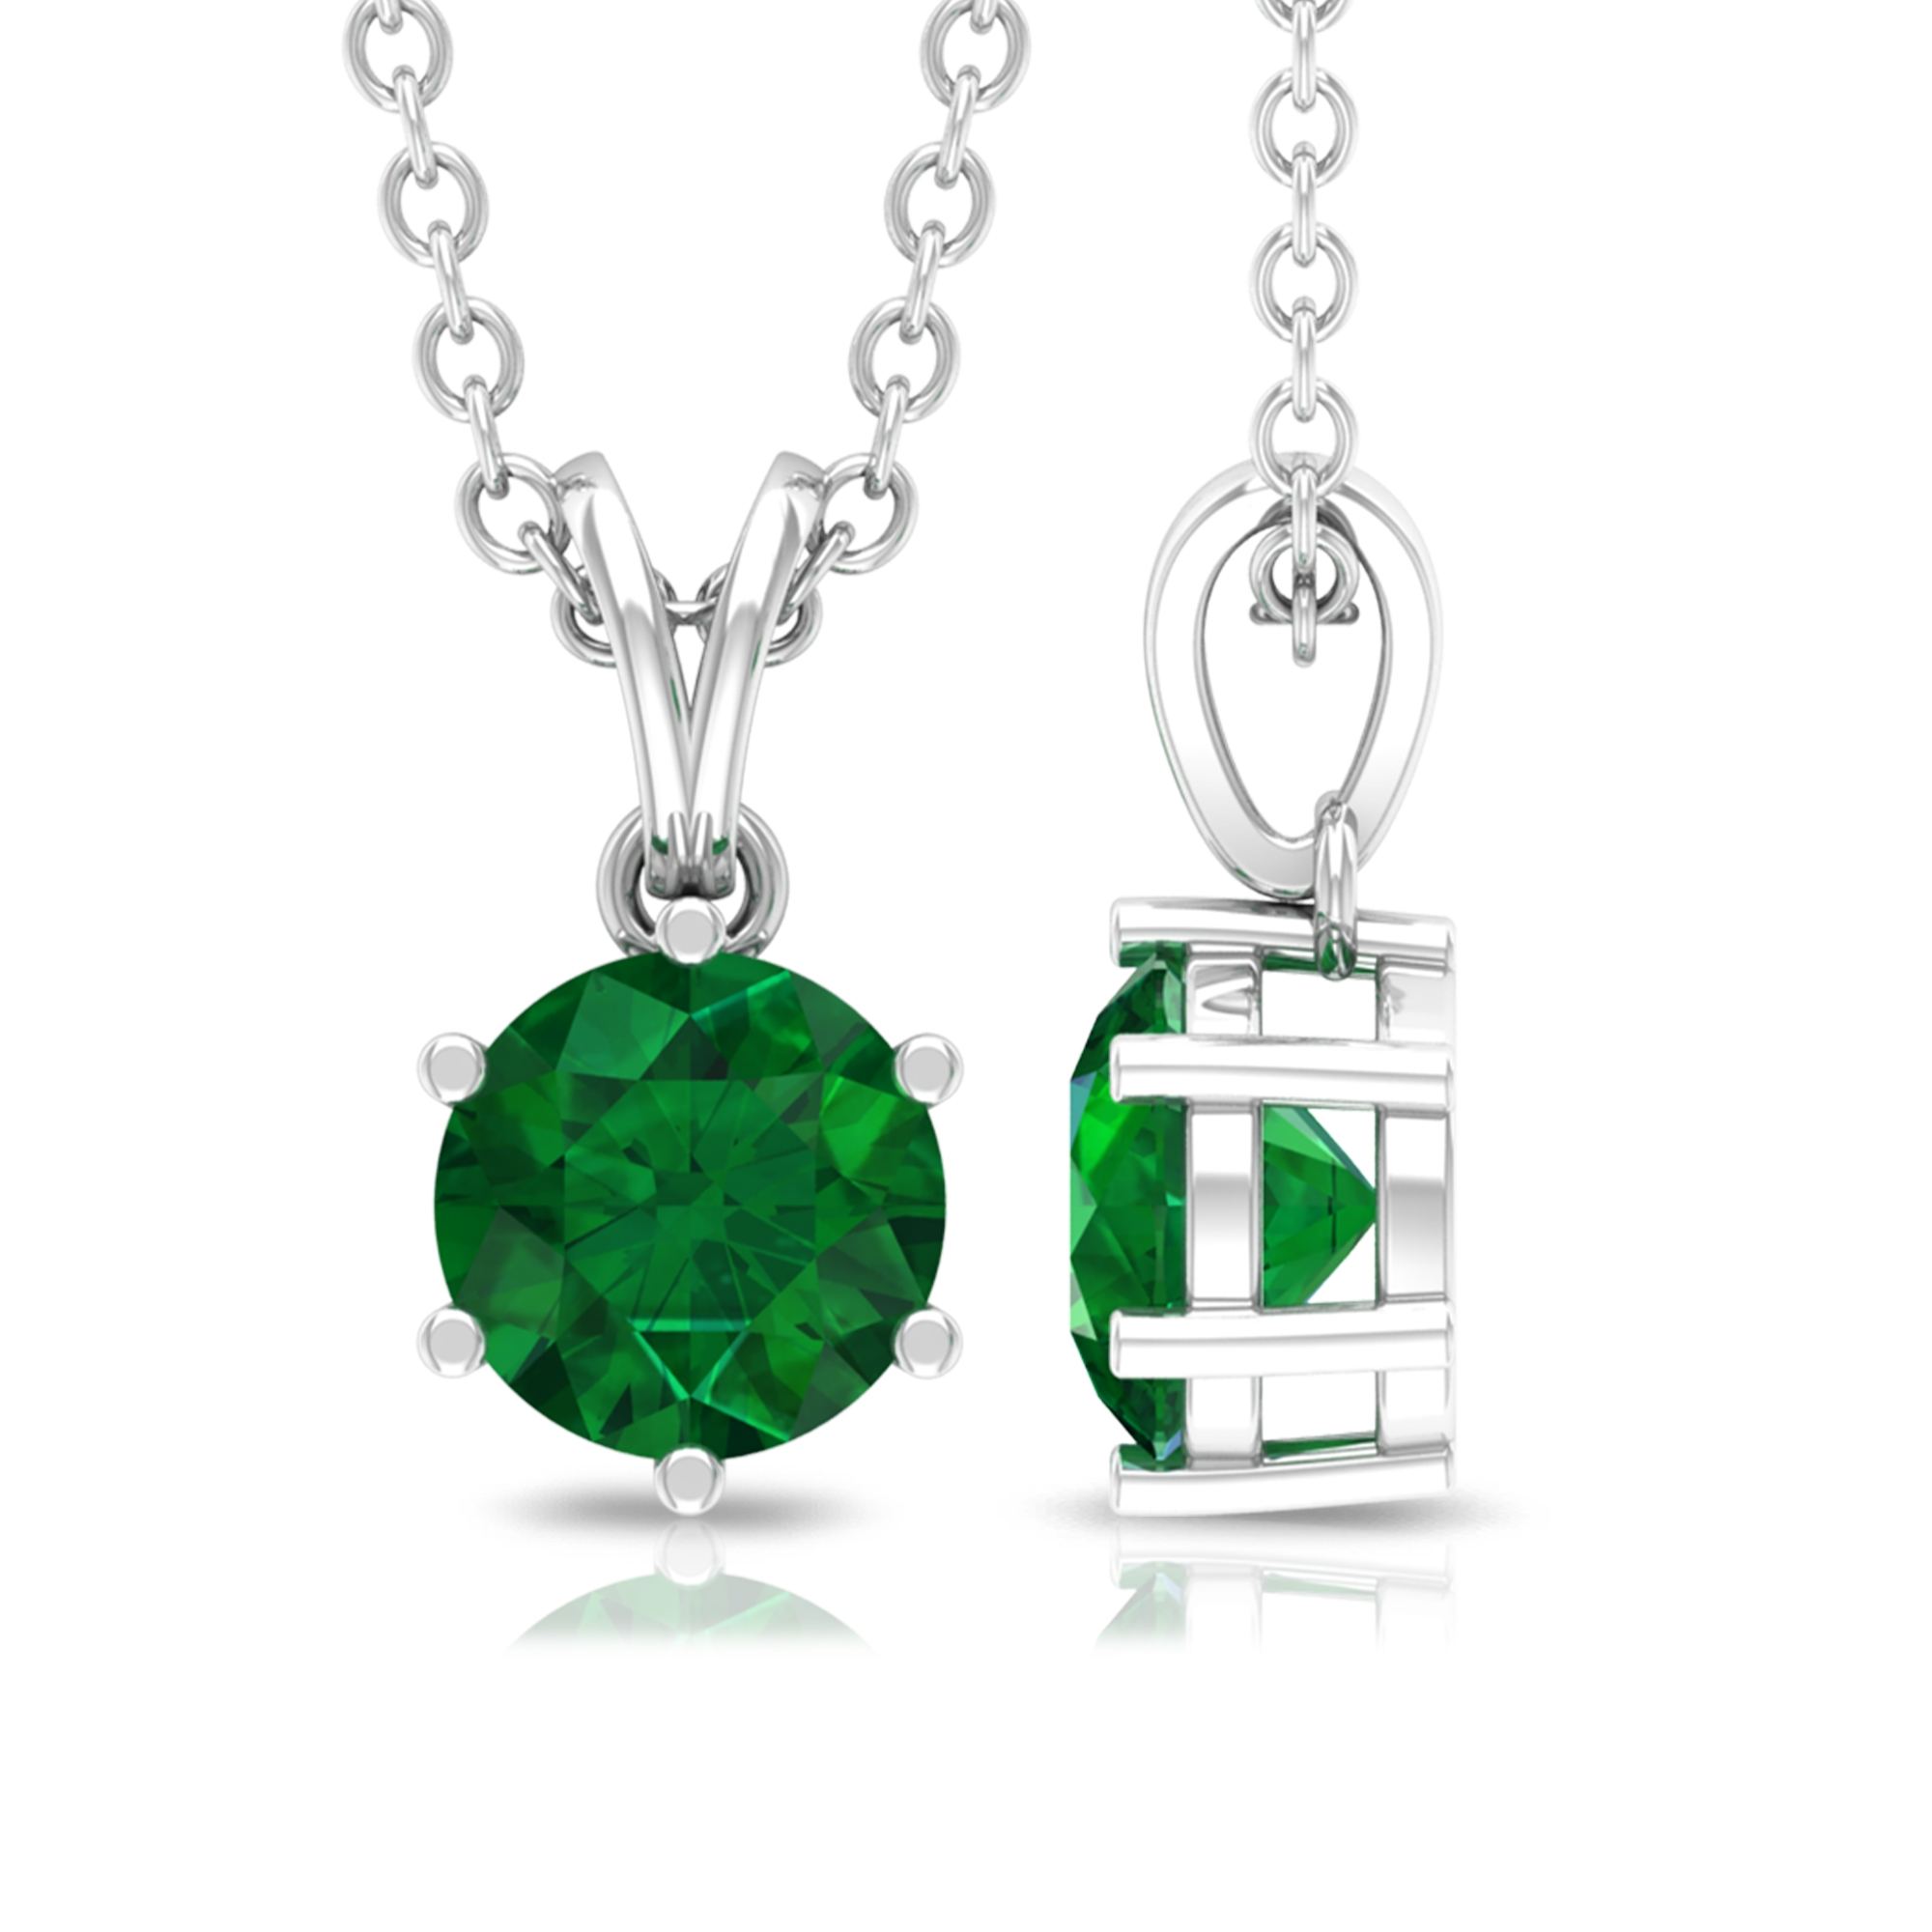 5 MM Round Cut Emerald Solitaire Pendant in Six Prong Set with Rabbit Ear Bail